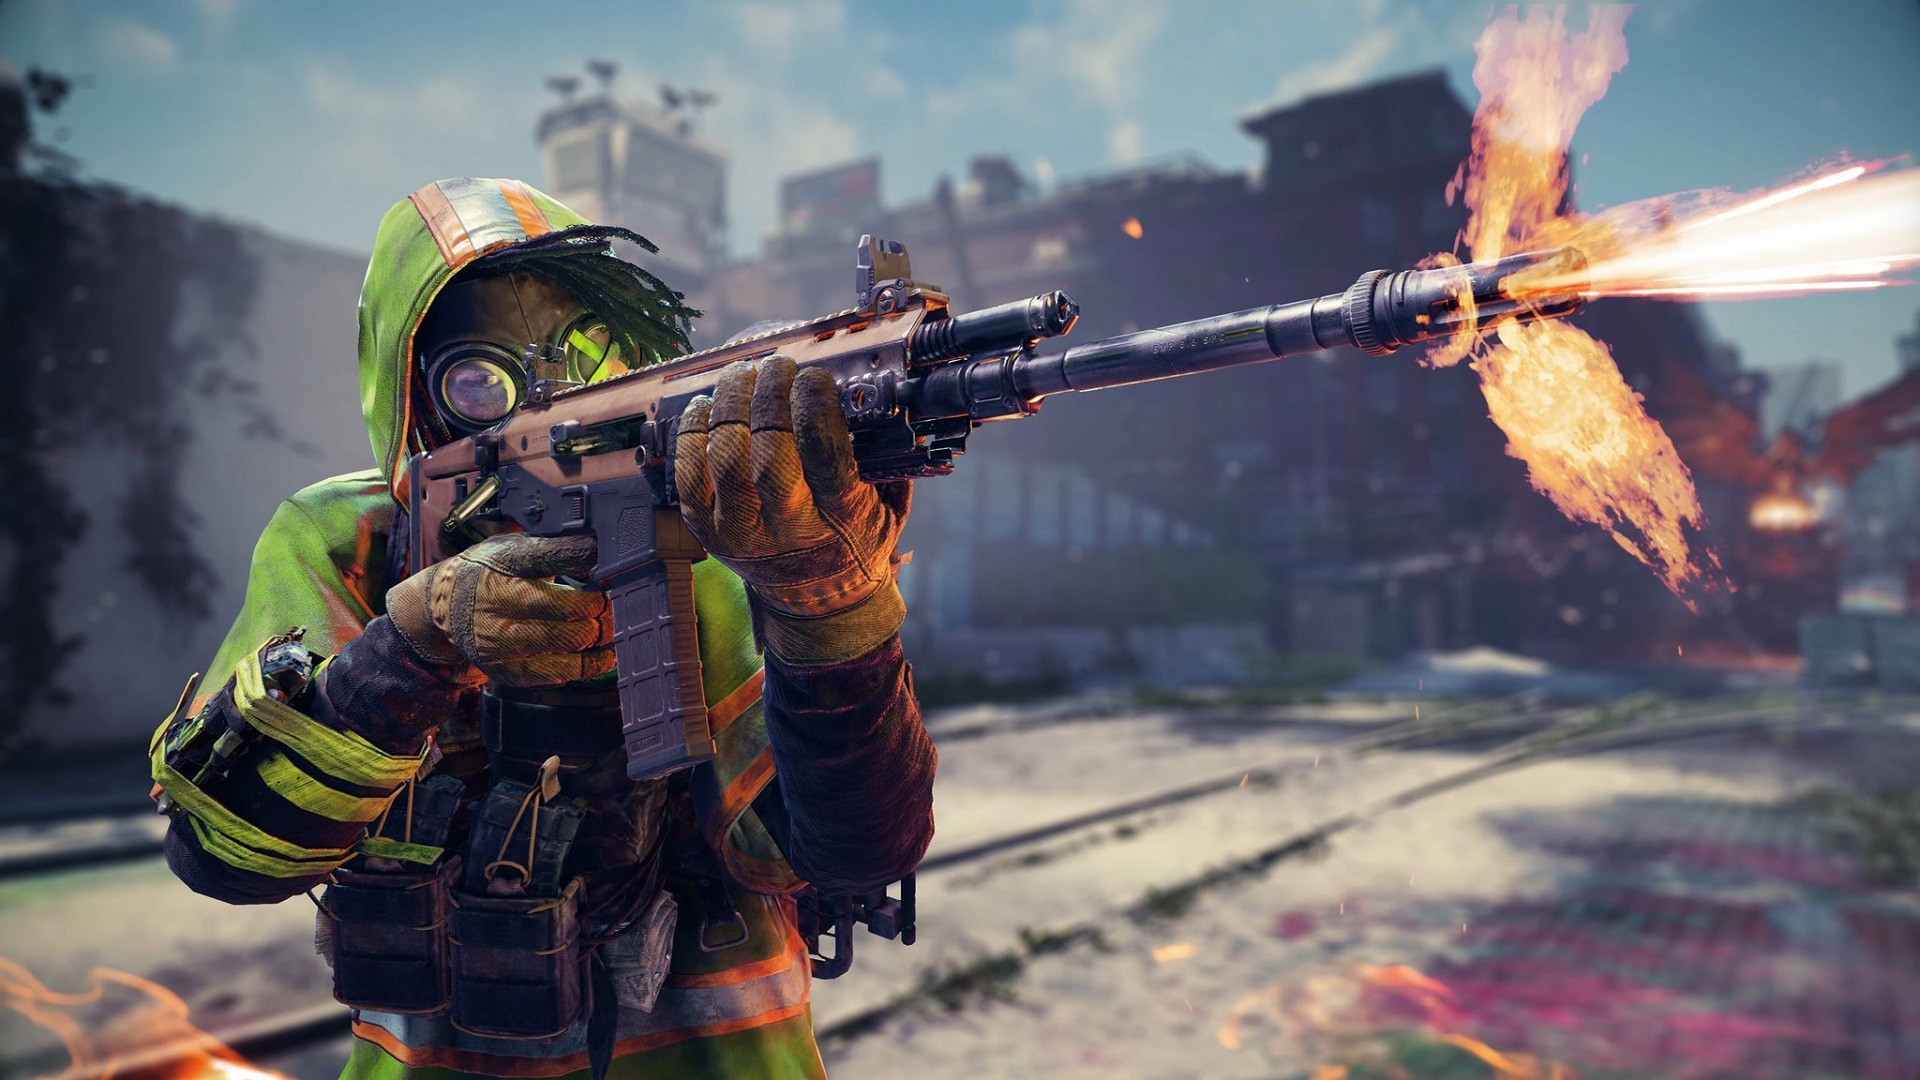 Tom Clancys XDefiant: Details on crossplay and multiplayer modes